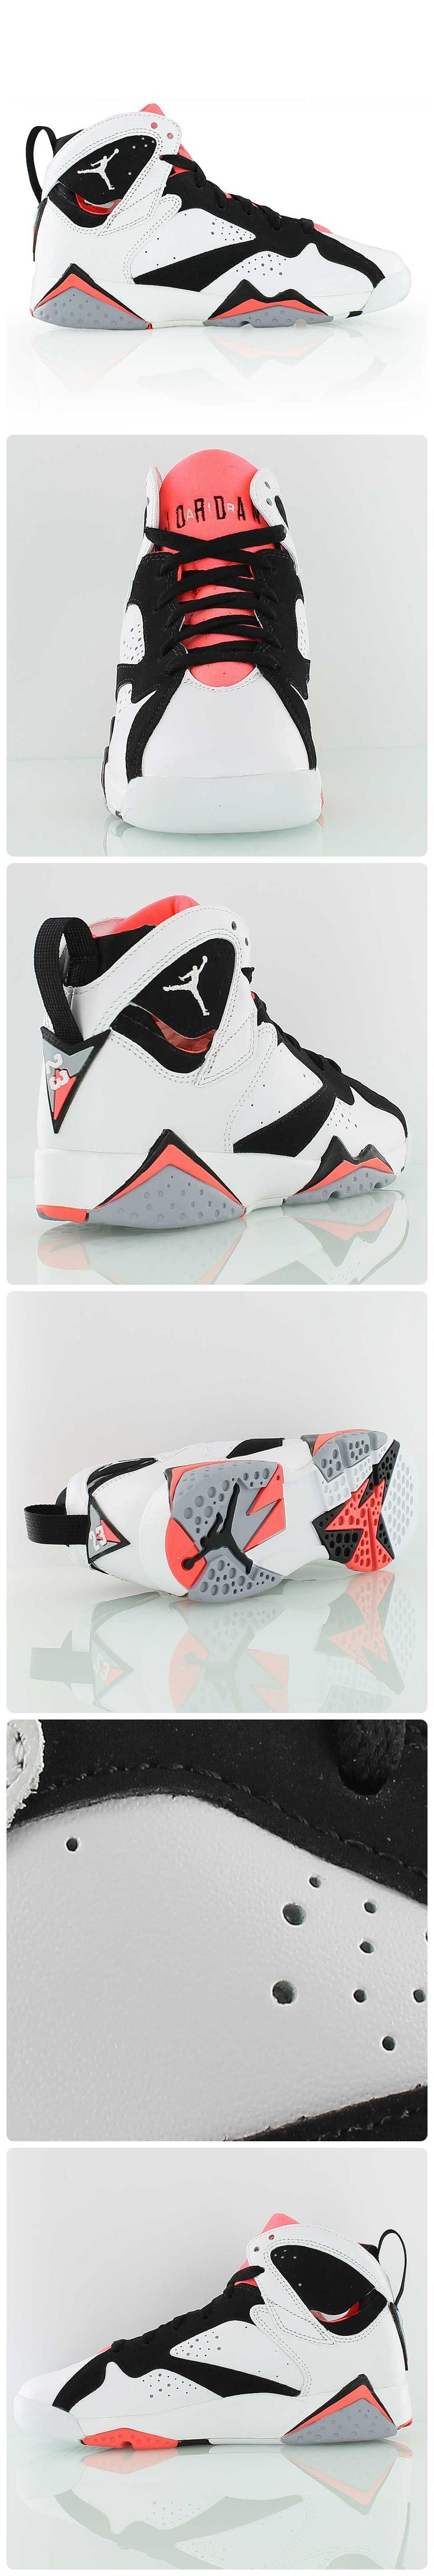 NIKE Women\u0027s Shoes - Air Jordan 7 Retro GG Hot Lava exclusively for all the  Jordan girls out there - Find deals and best selling products for Nike Shoes  for ...